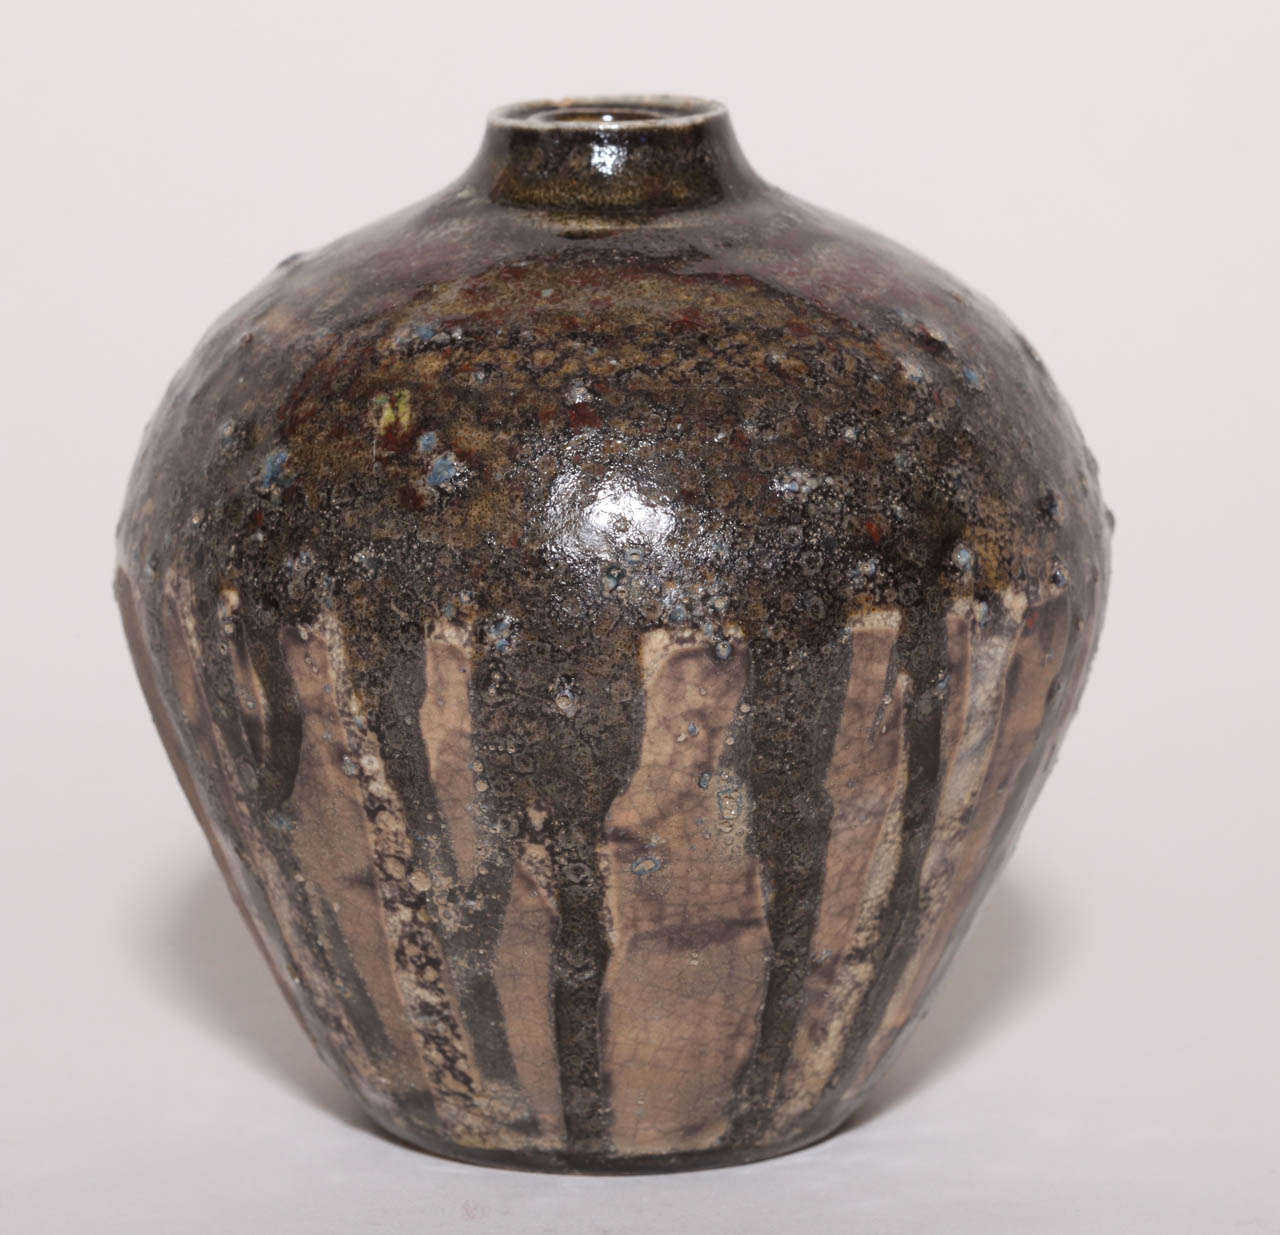 Multi-colors on large neck tapering to small base with linear decoration of brown glaze on lower part of vase. Signed: H Sim in enamel.  Variety of other Henri Simmen pieces available.  (Price shown is reduced price, no further trade discount)